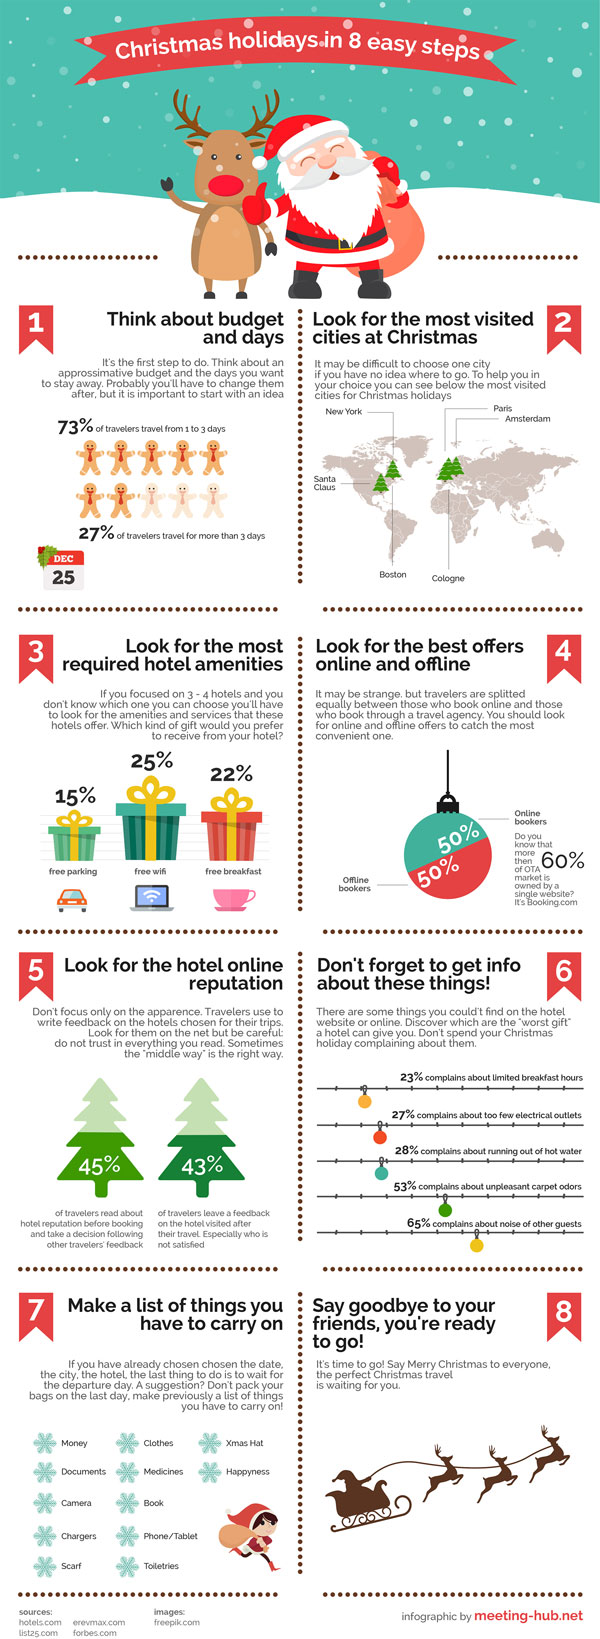 Xmas_infographic_meeting-hub